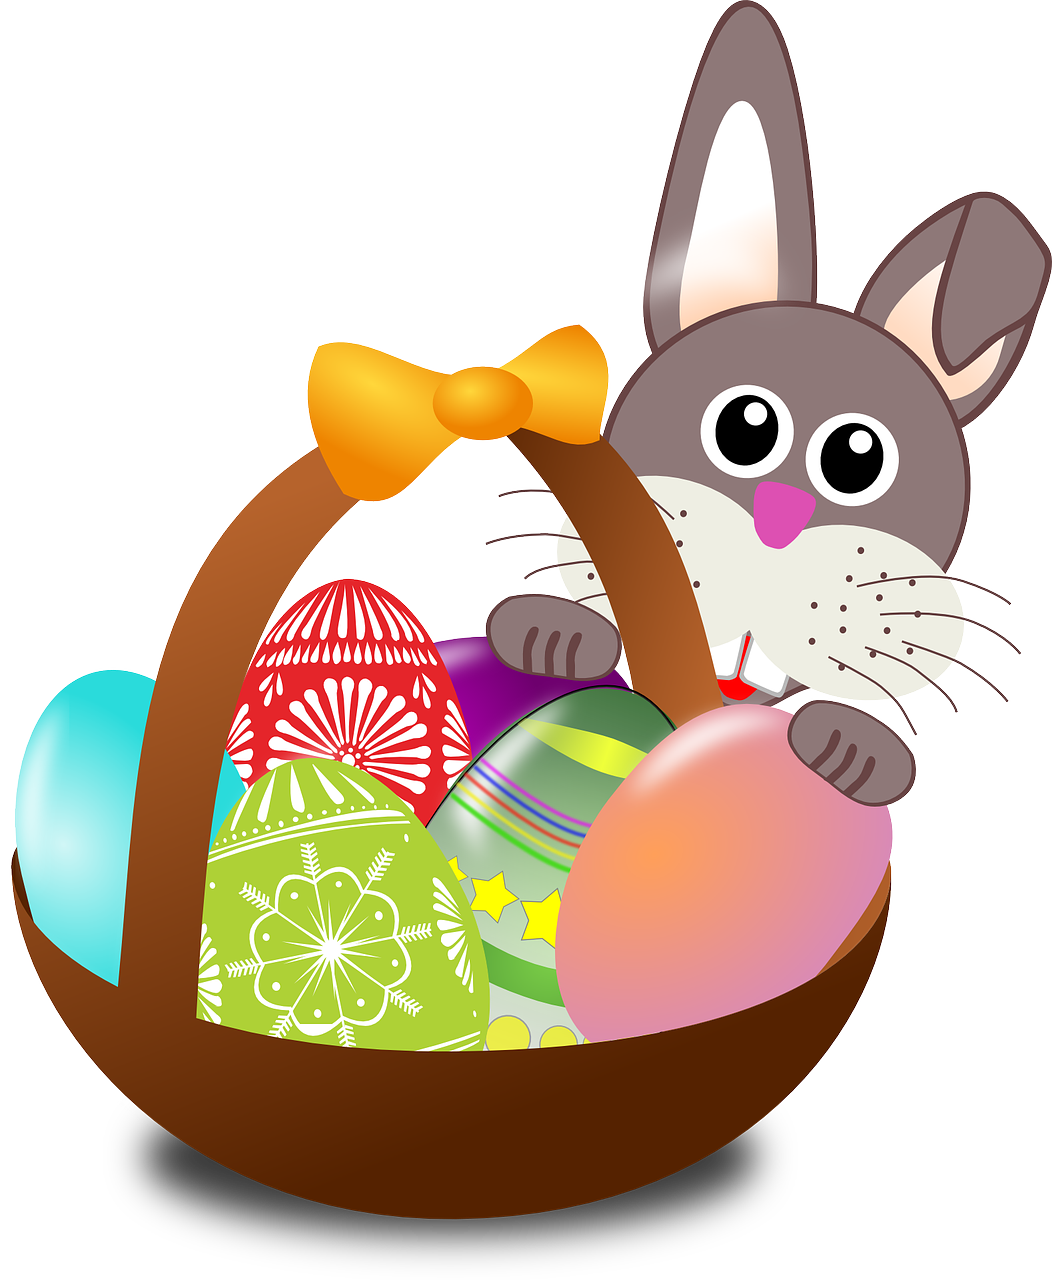 graphic free library Easter Bunny art